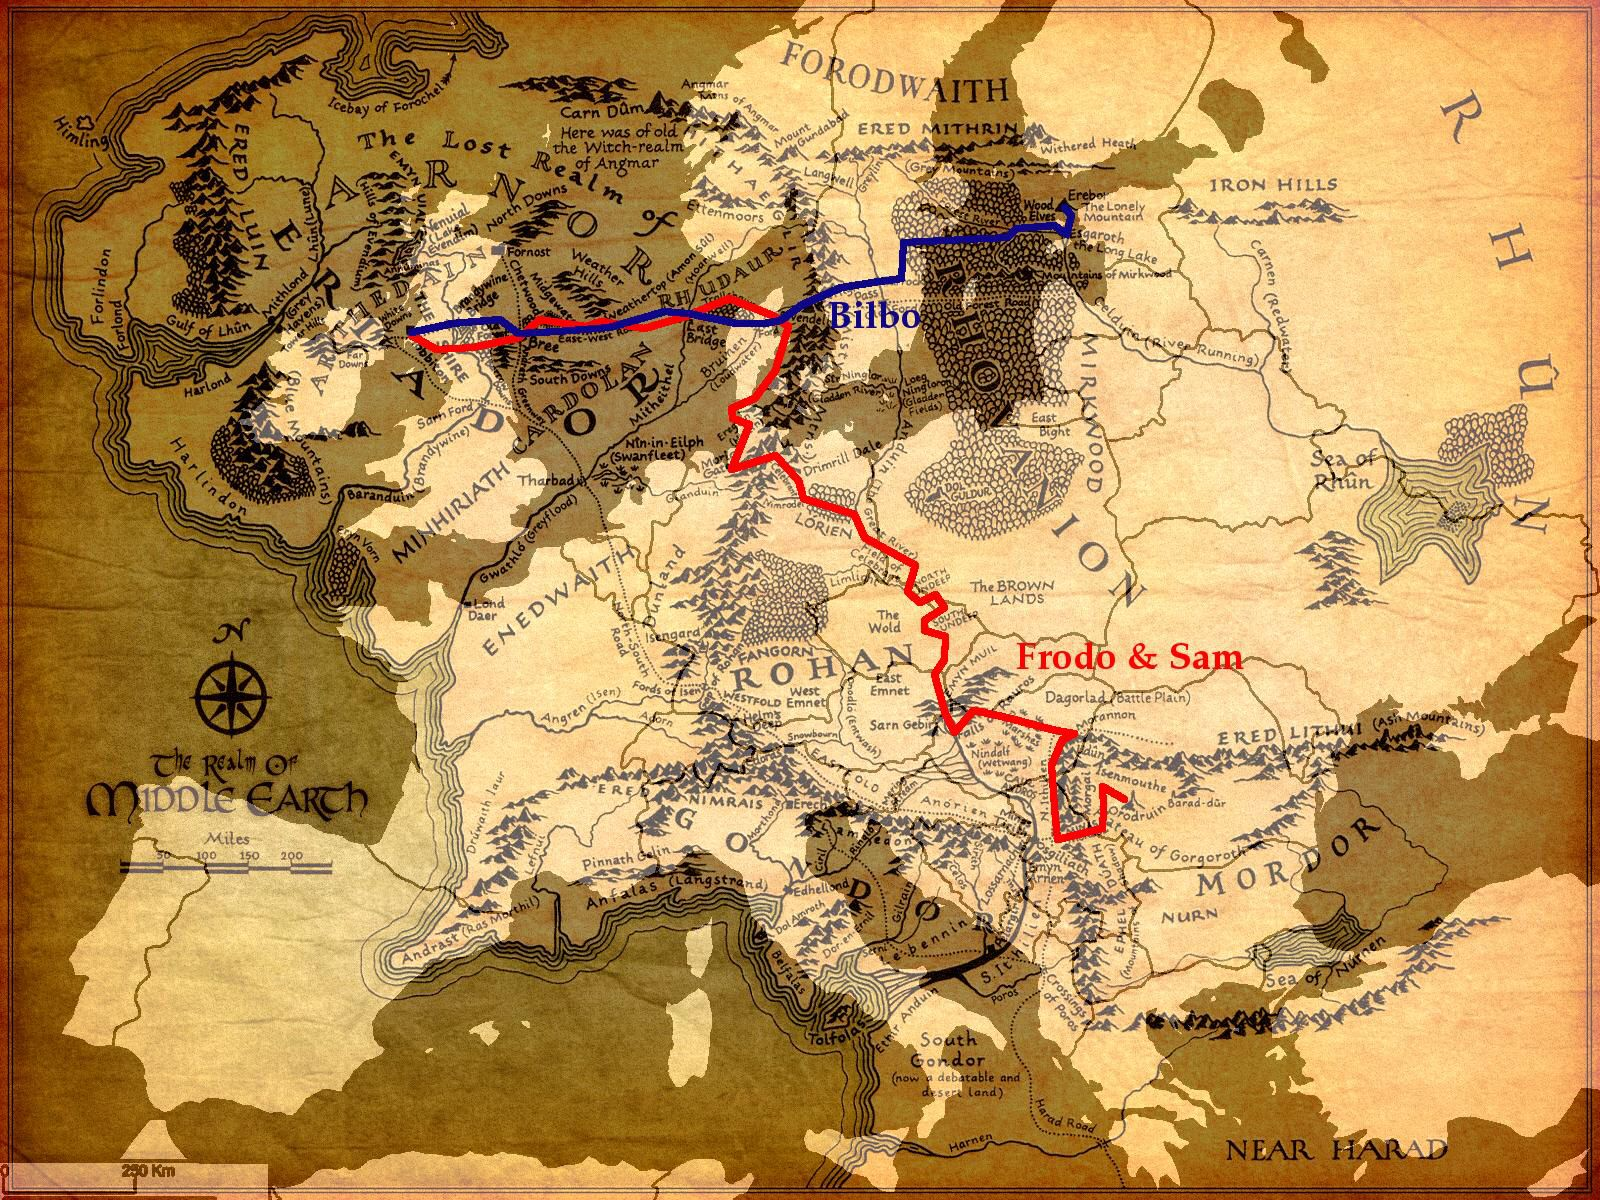 Two long journeys Middle Earth superimposed